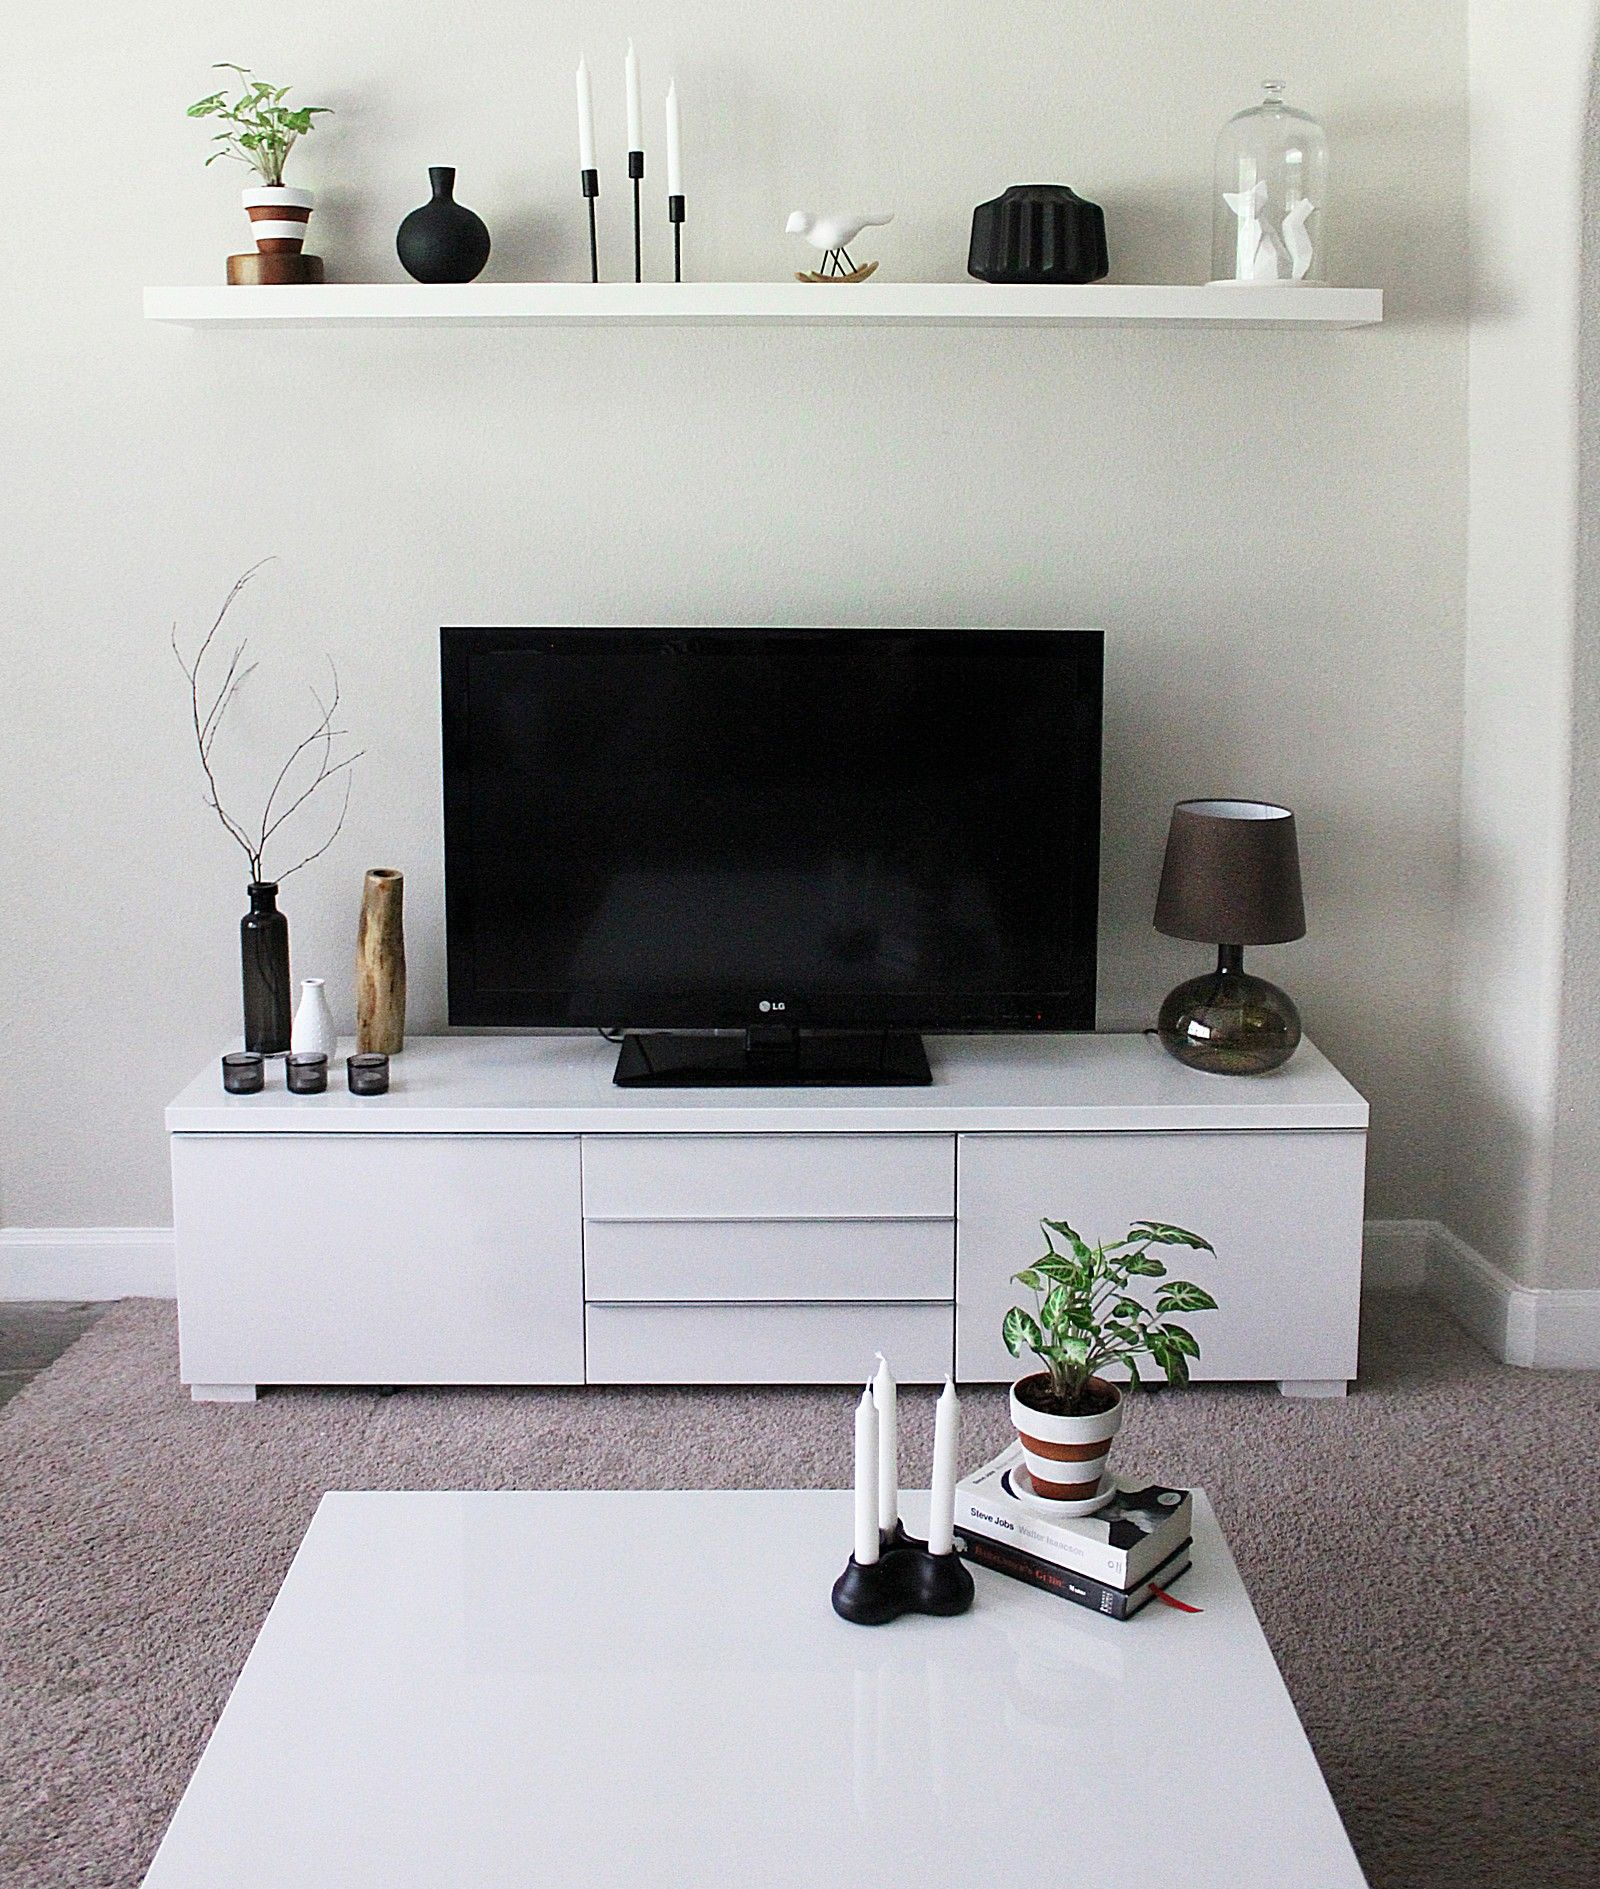 Small Living Room Ideas With Tv: Minimalist TV Stand And Cabinet IKEA Besta